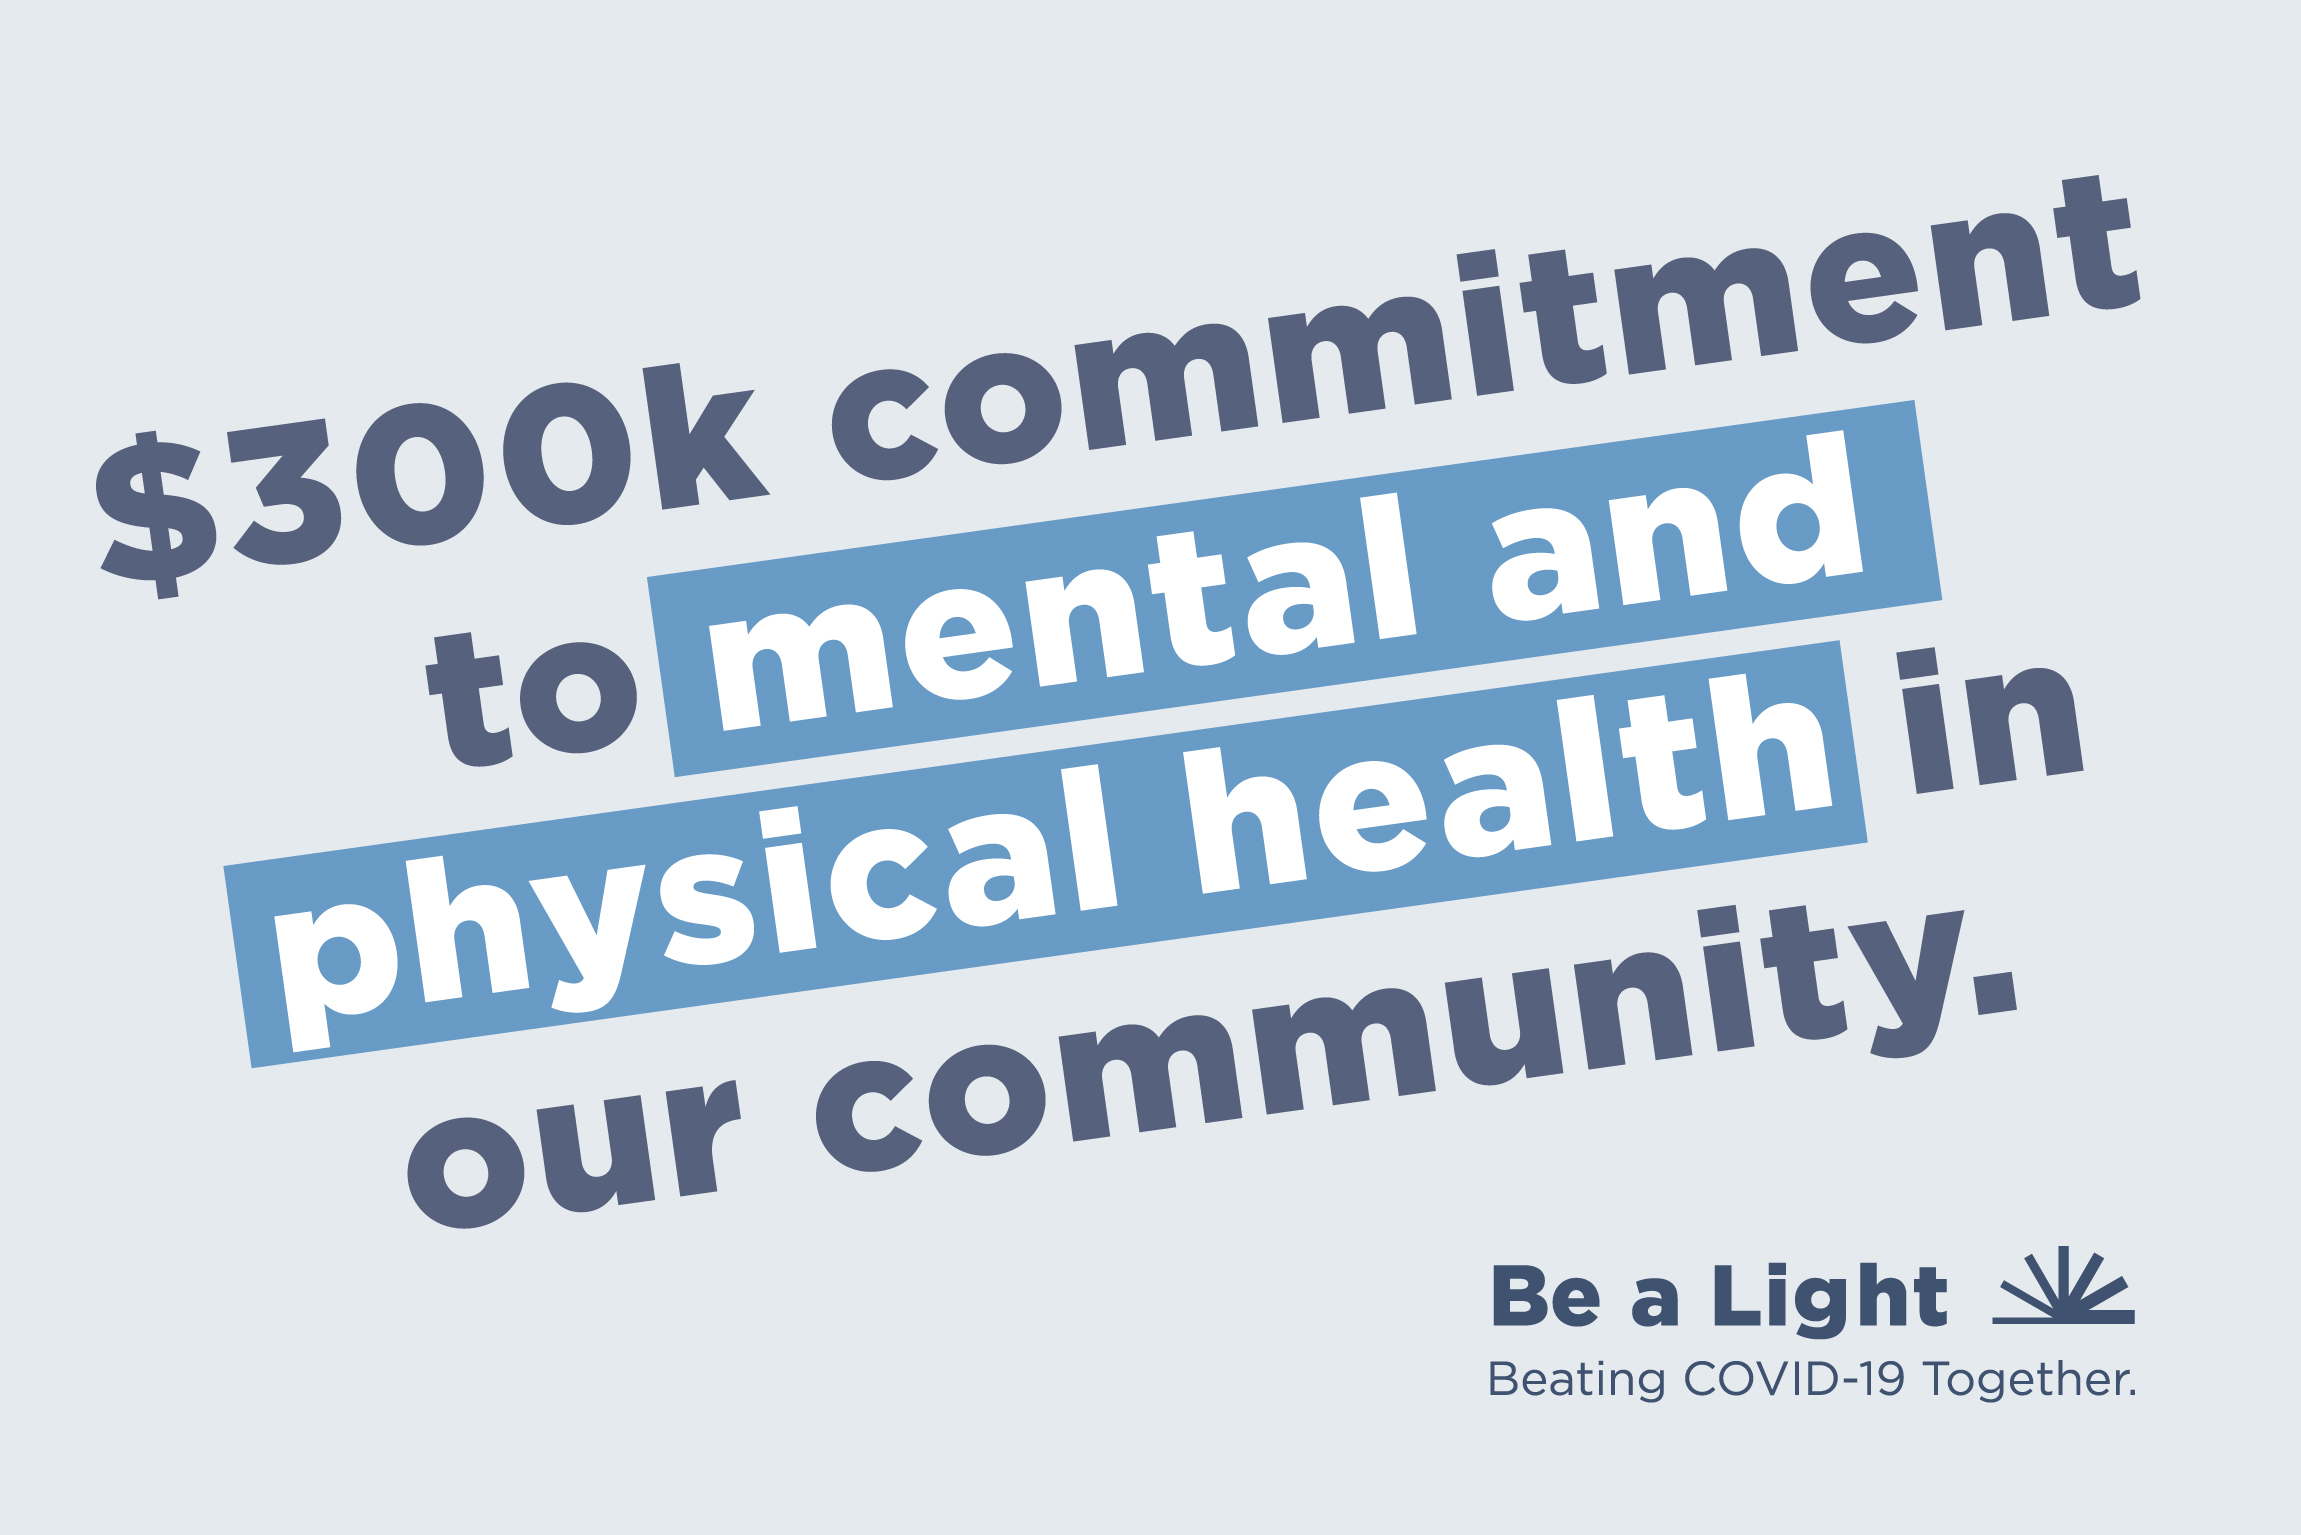 Advertisement for $300,000 mental and physical health donation Be a Light campaign